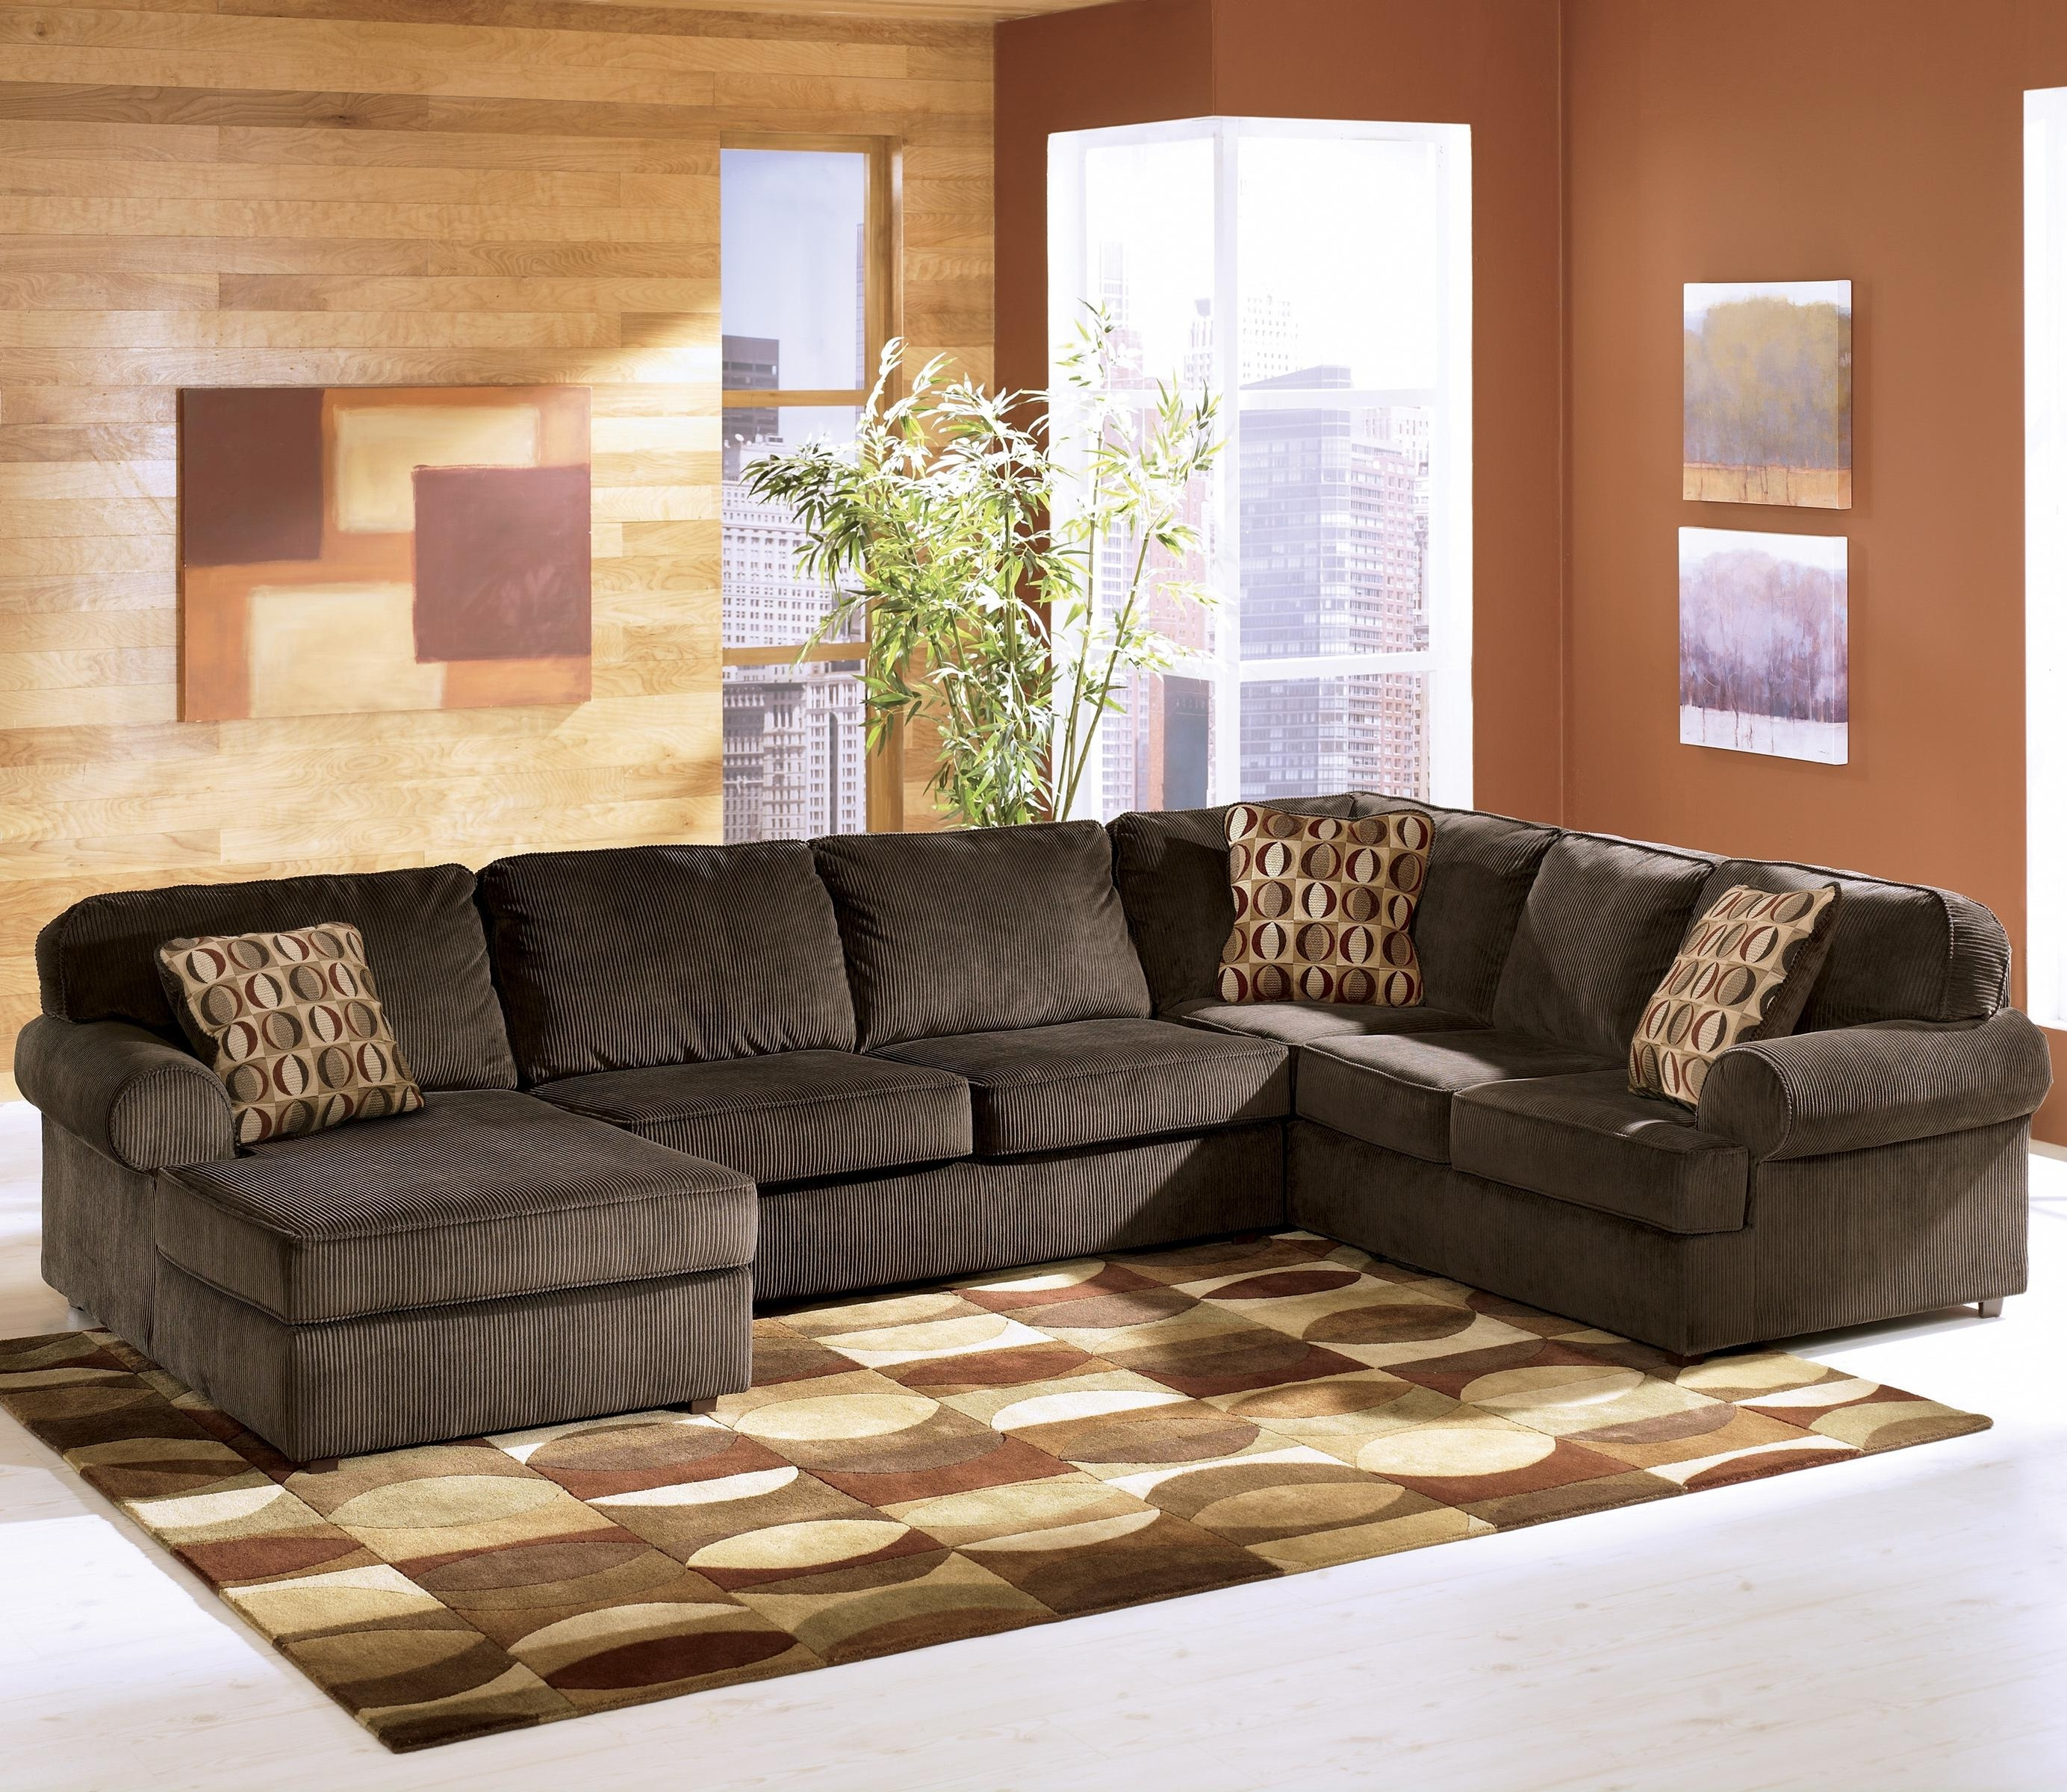 Widely Used Vista – Chocolate 3 Piece Sectional With Right Chaiseashley In Ashley Furniture Sectionals With Chaise (View 13 of 15)